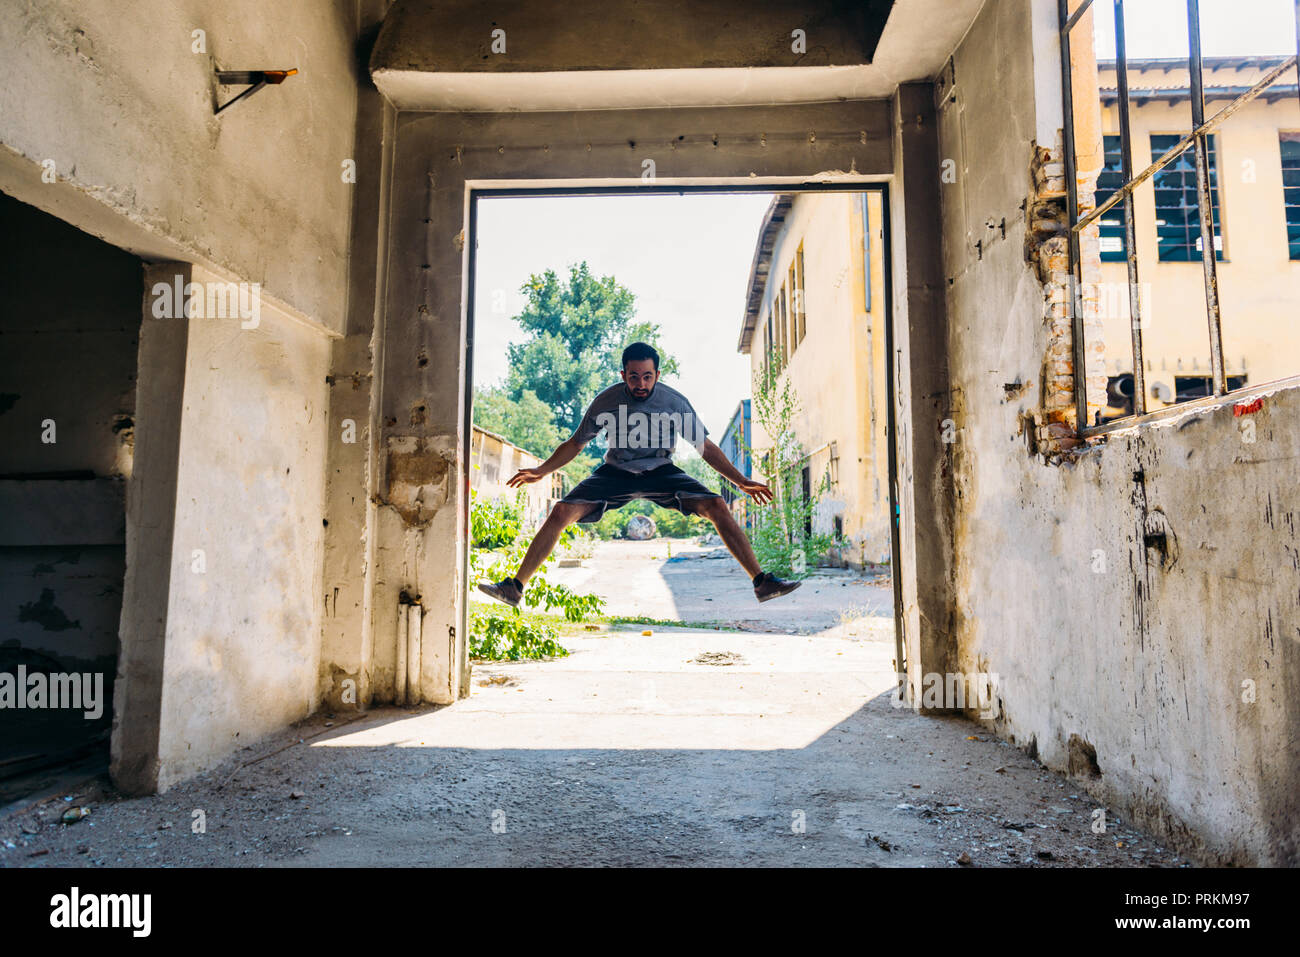 Parkour guy training parkour while jumping outdoors - Stock Image